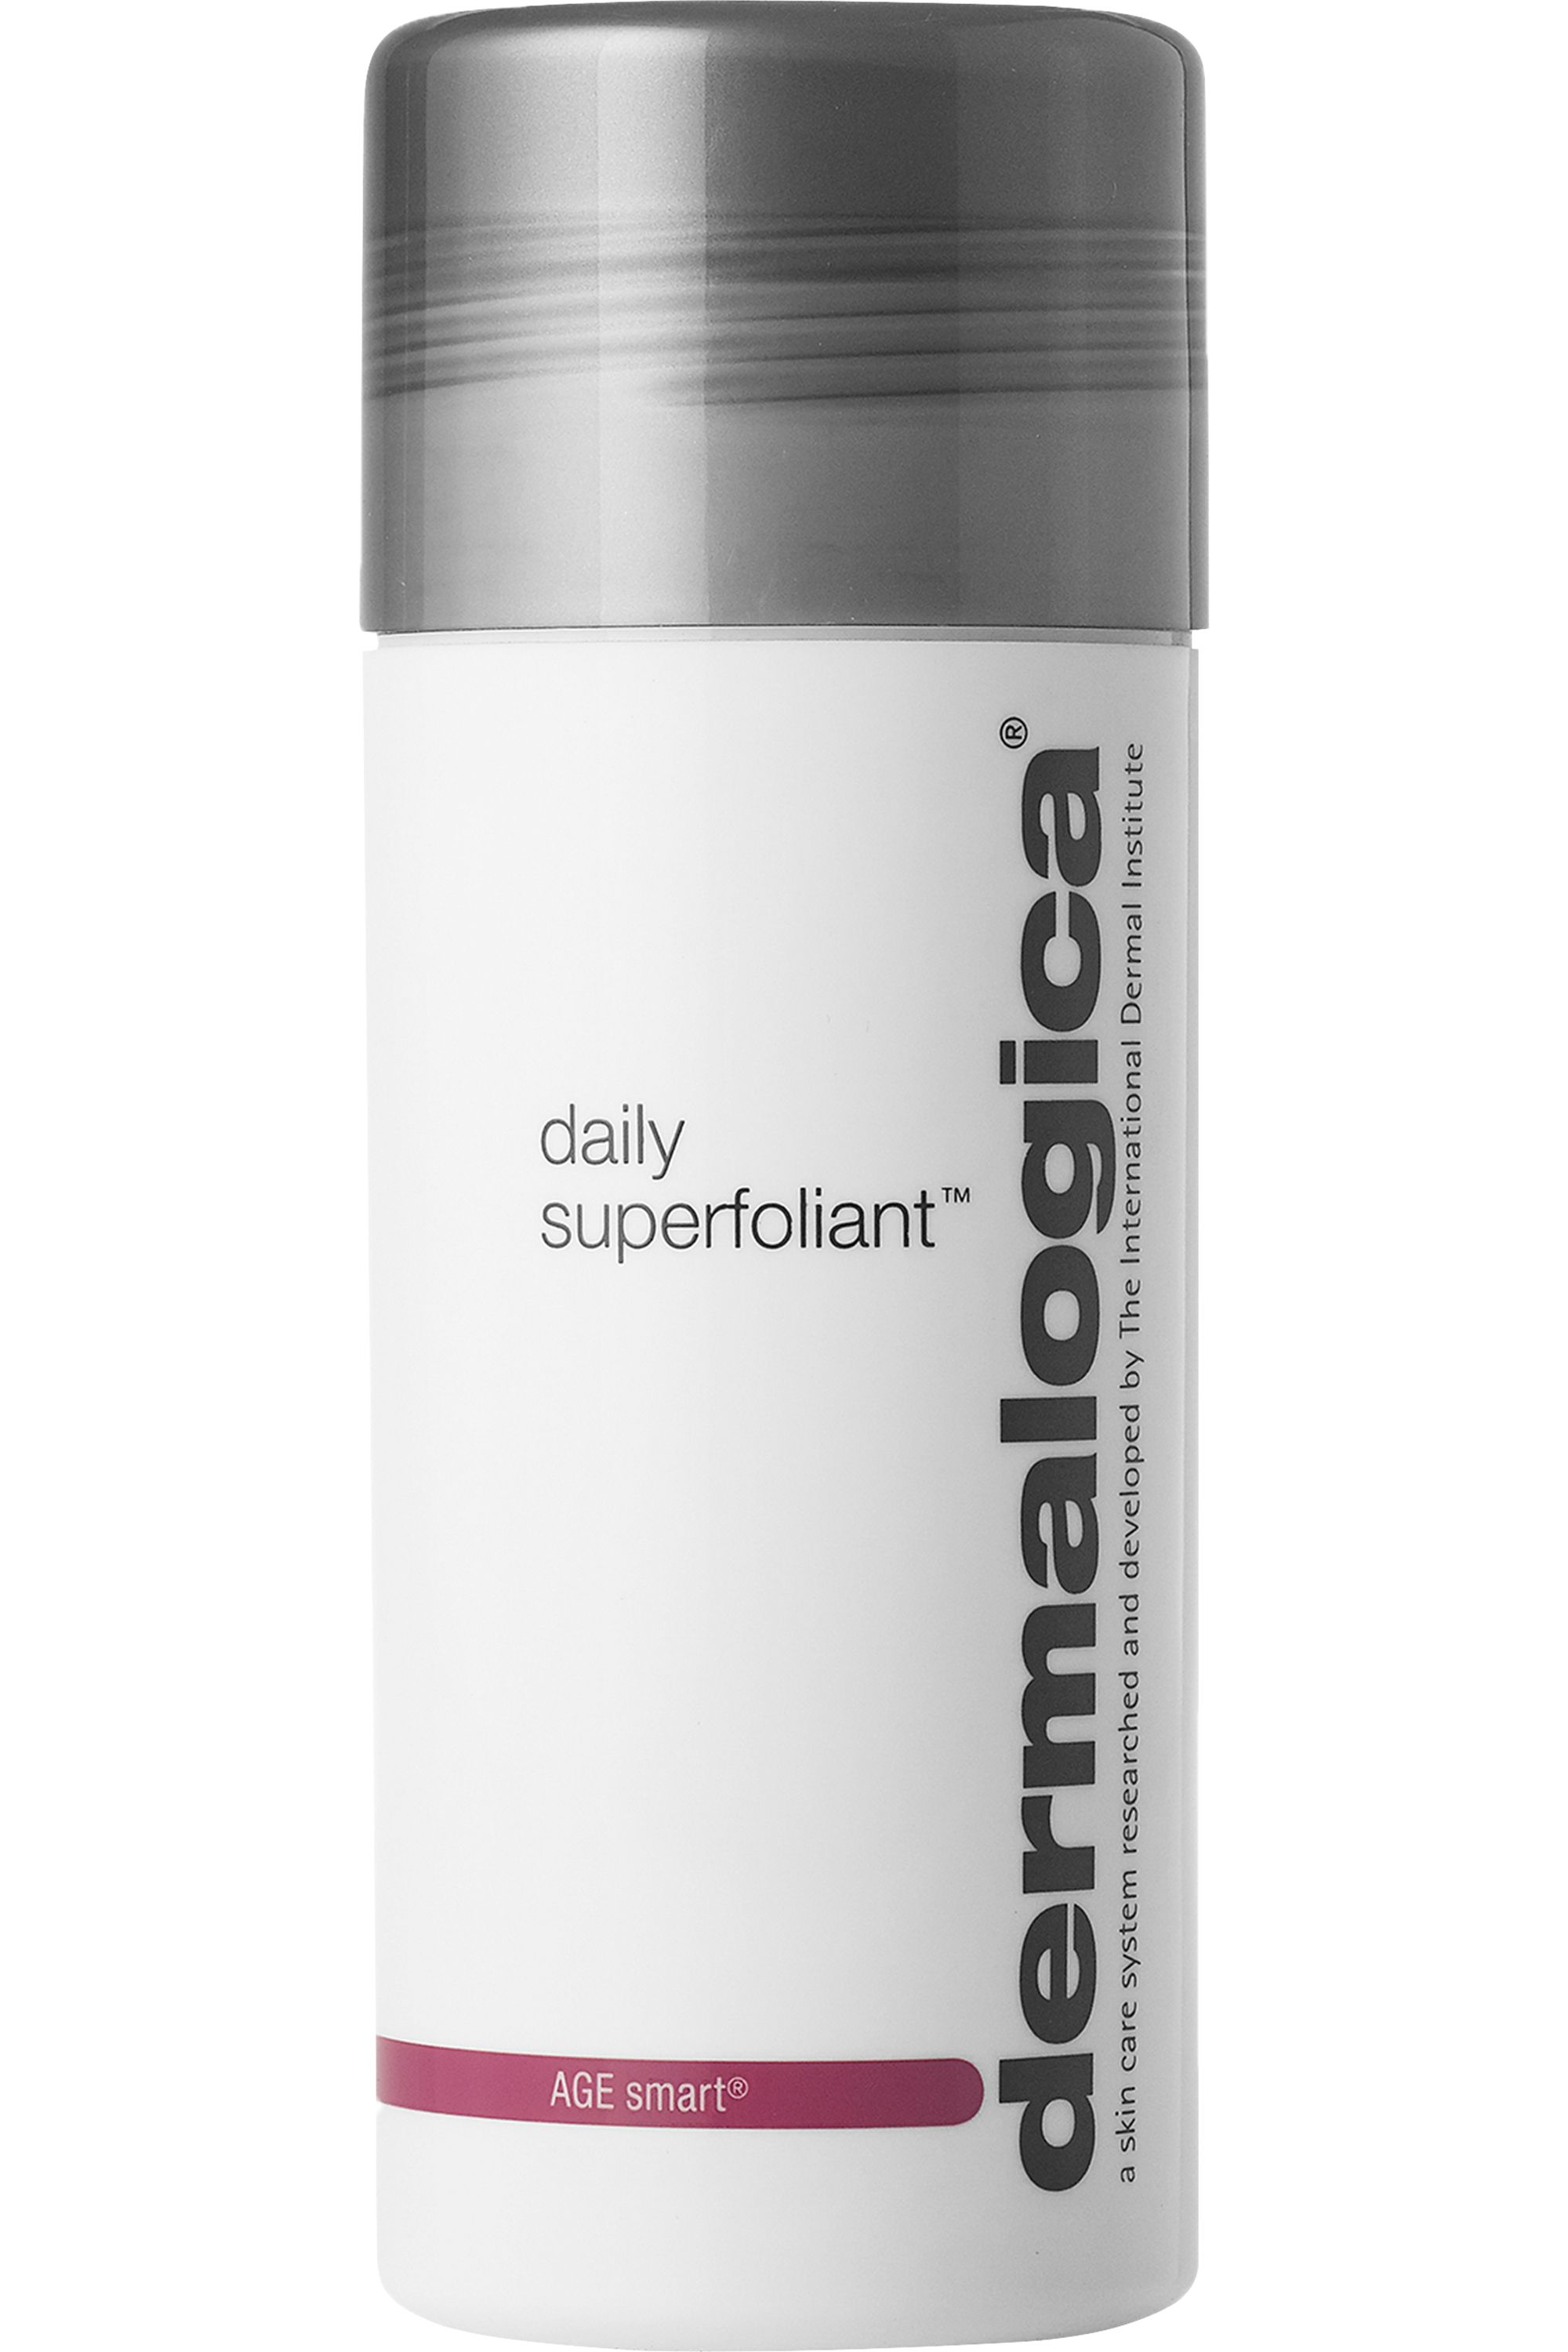 Blissim : Dermalogica - Gommage mécanique et enzymatique anti-pollution au charbon actif Daily Superfoliant - Gommage mécanique et enzymatique anti-pollution au charbon actif Daily Superfoliant